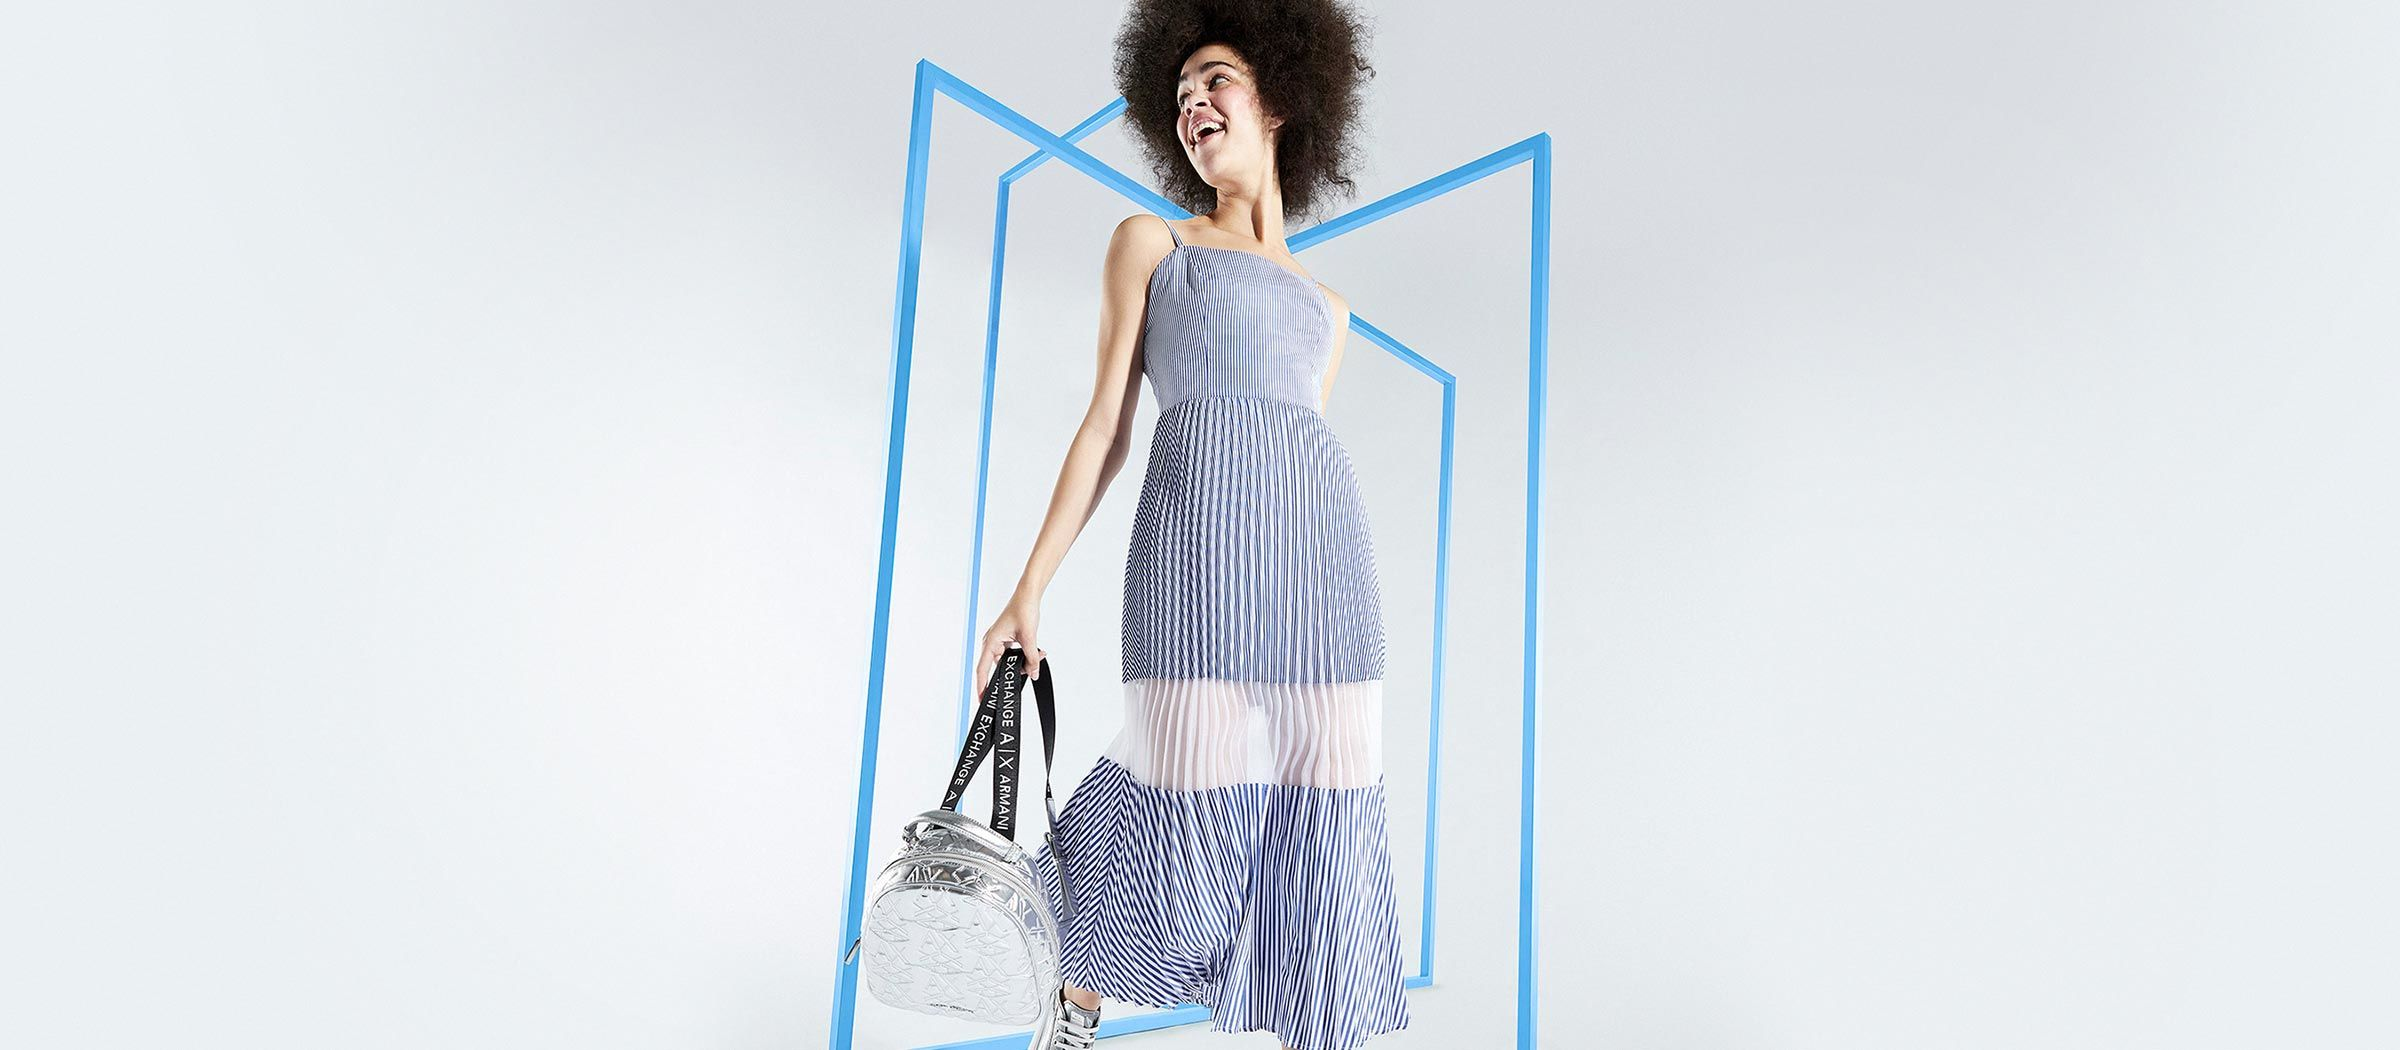 AX woman model wearing a striped dress